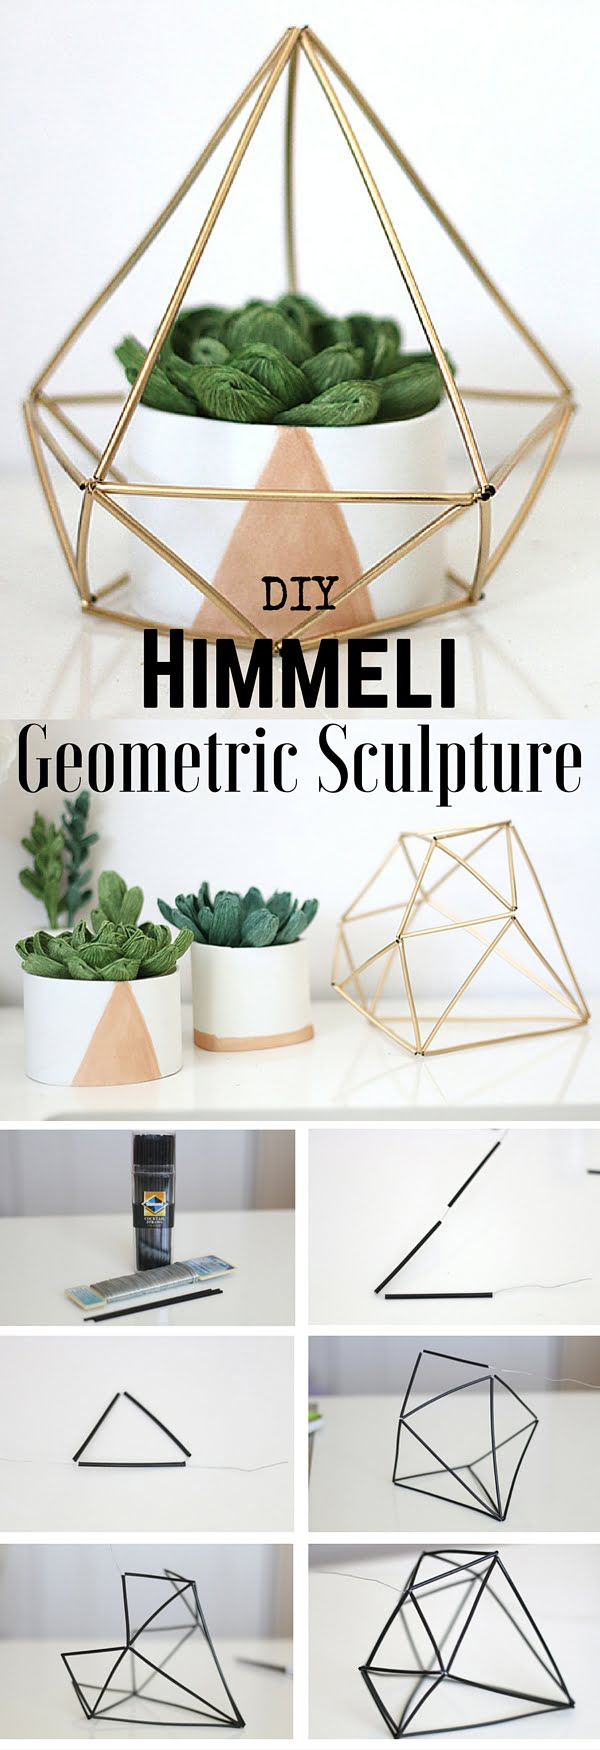 15 Easy and Brilliant DIY Home Decor Crafts on a Budget - Check out the tutorial: #DIY Himmeli Geometric Sculpture